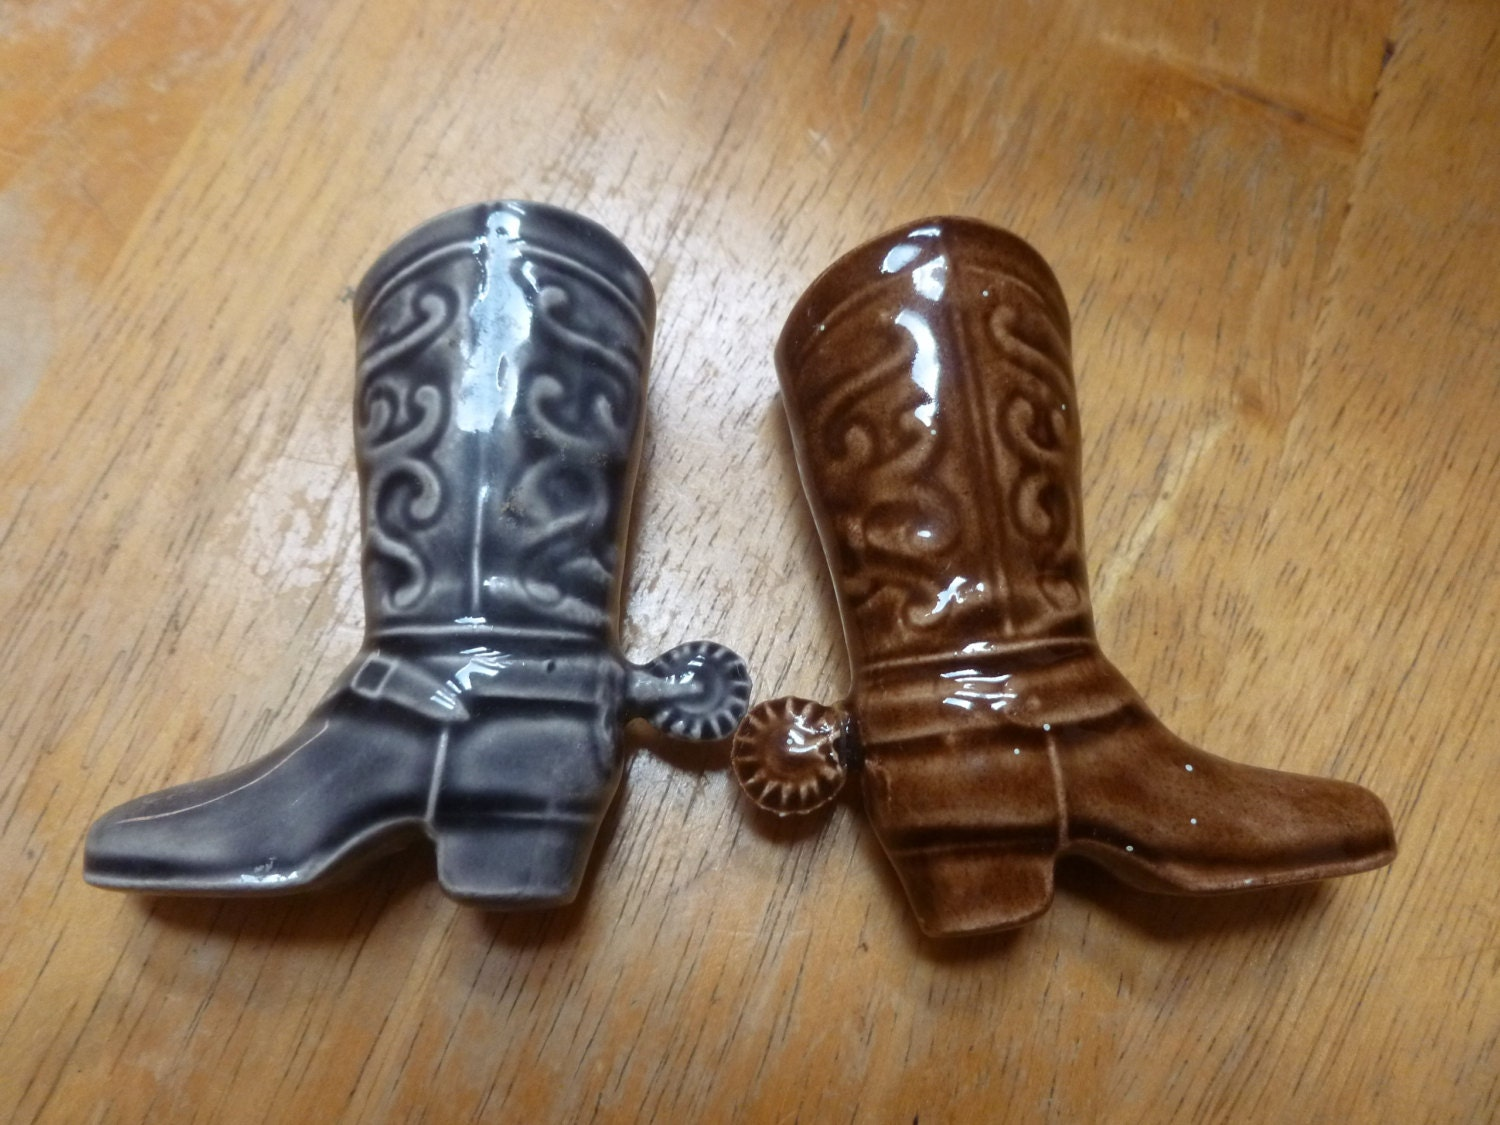 pottery cowboy boots with spurs sales sle